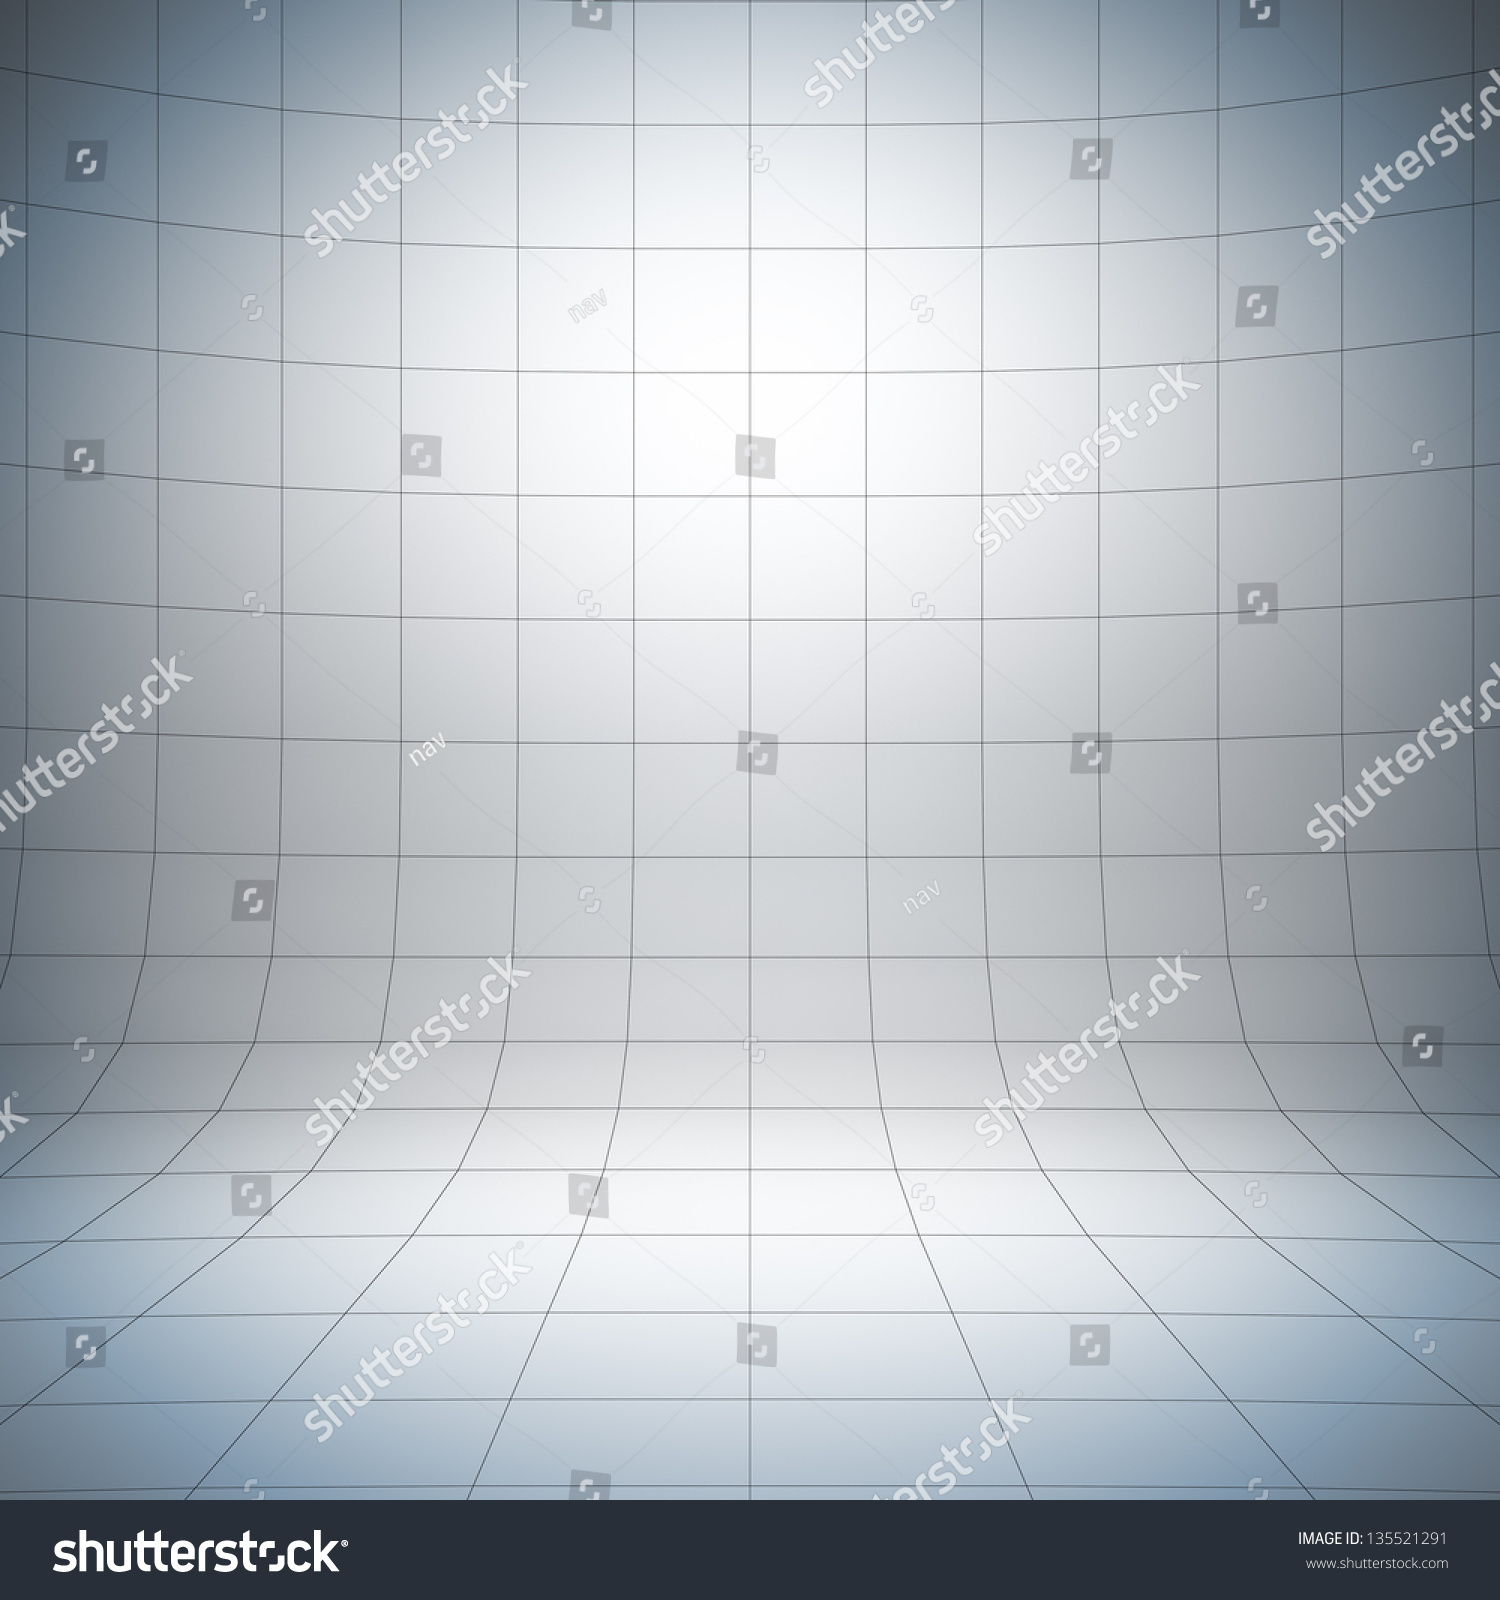 blank theatre stage diagram carrier 30ra wiring empty white surface a 3d illustration of template